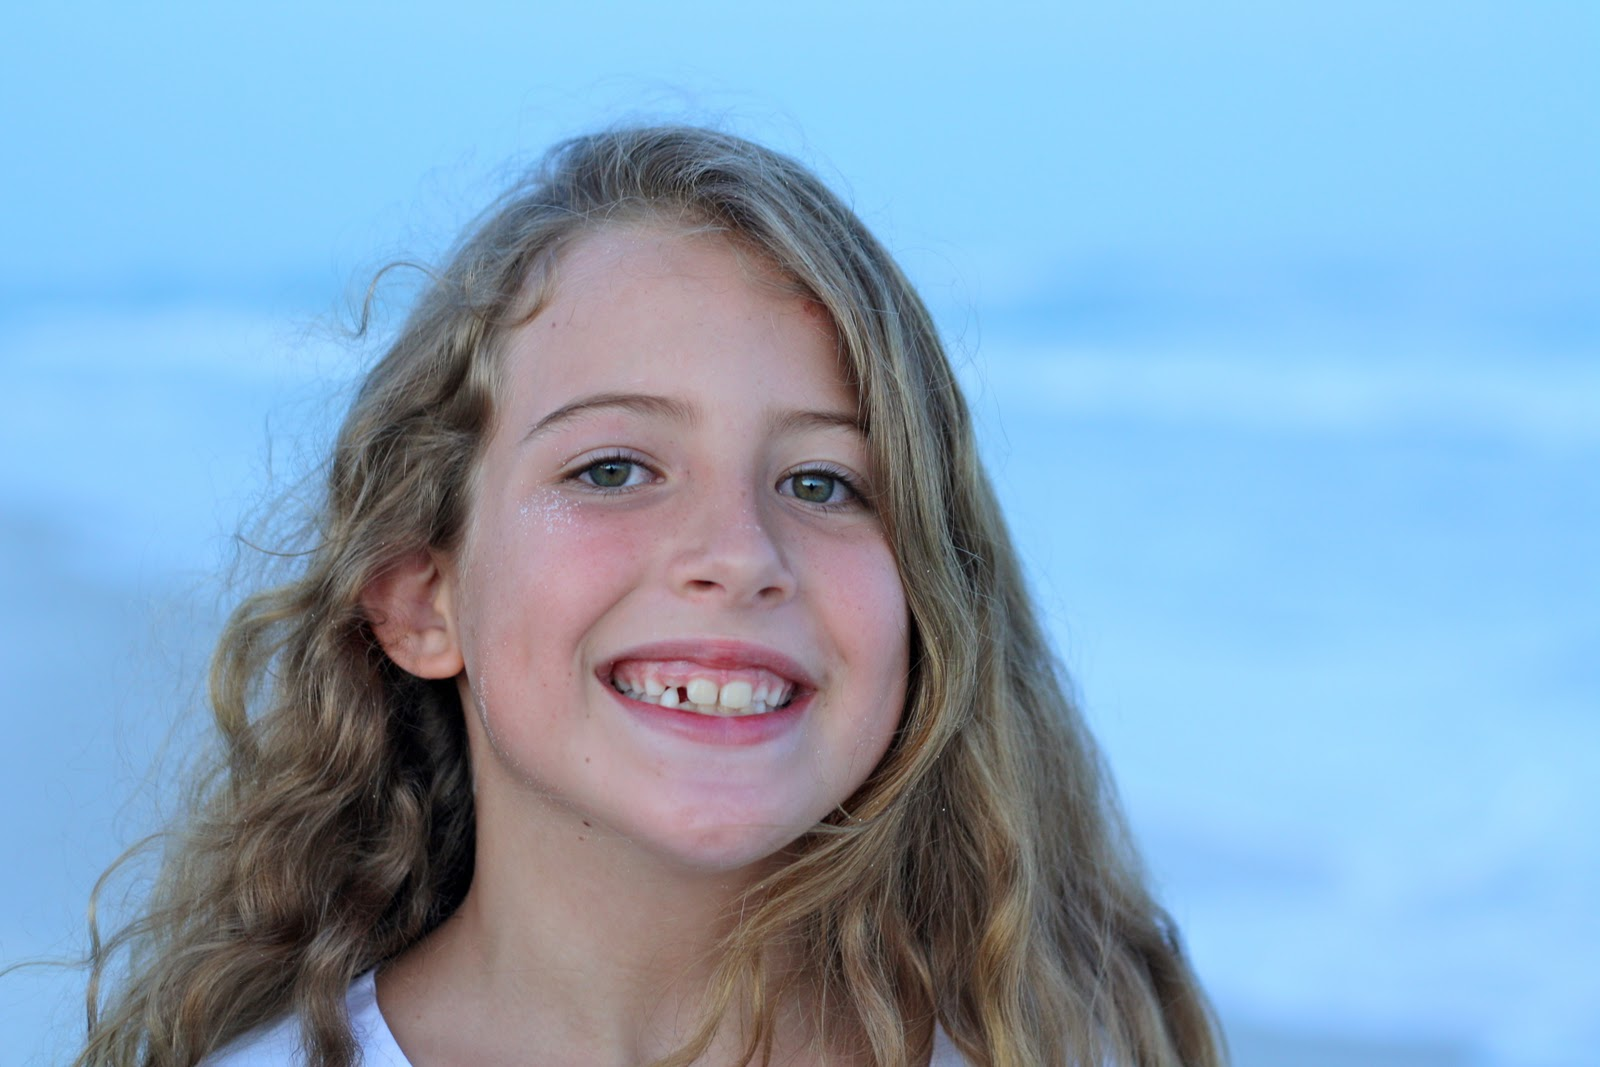 Our Ellen turned 10 last week. Wow, 10 years old. We are so proud of